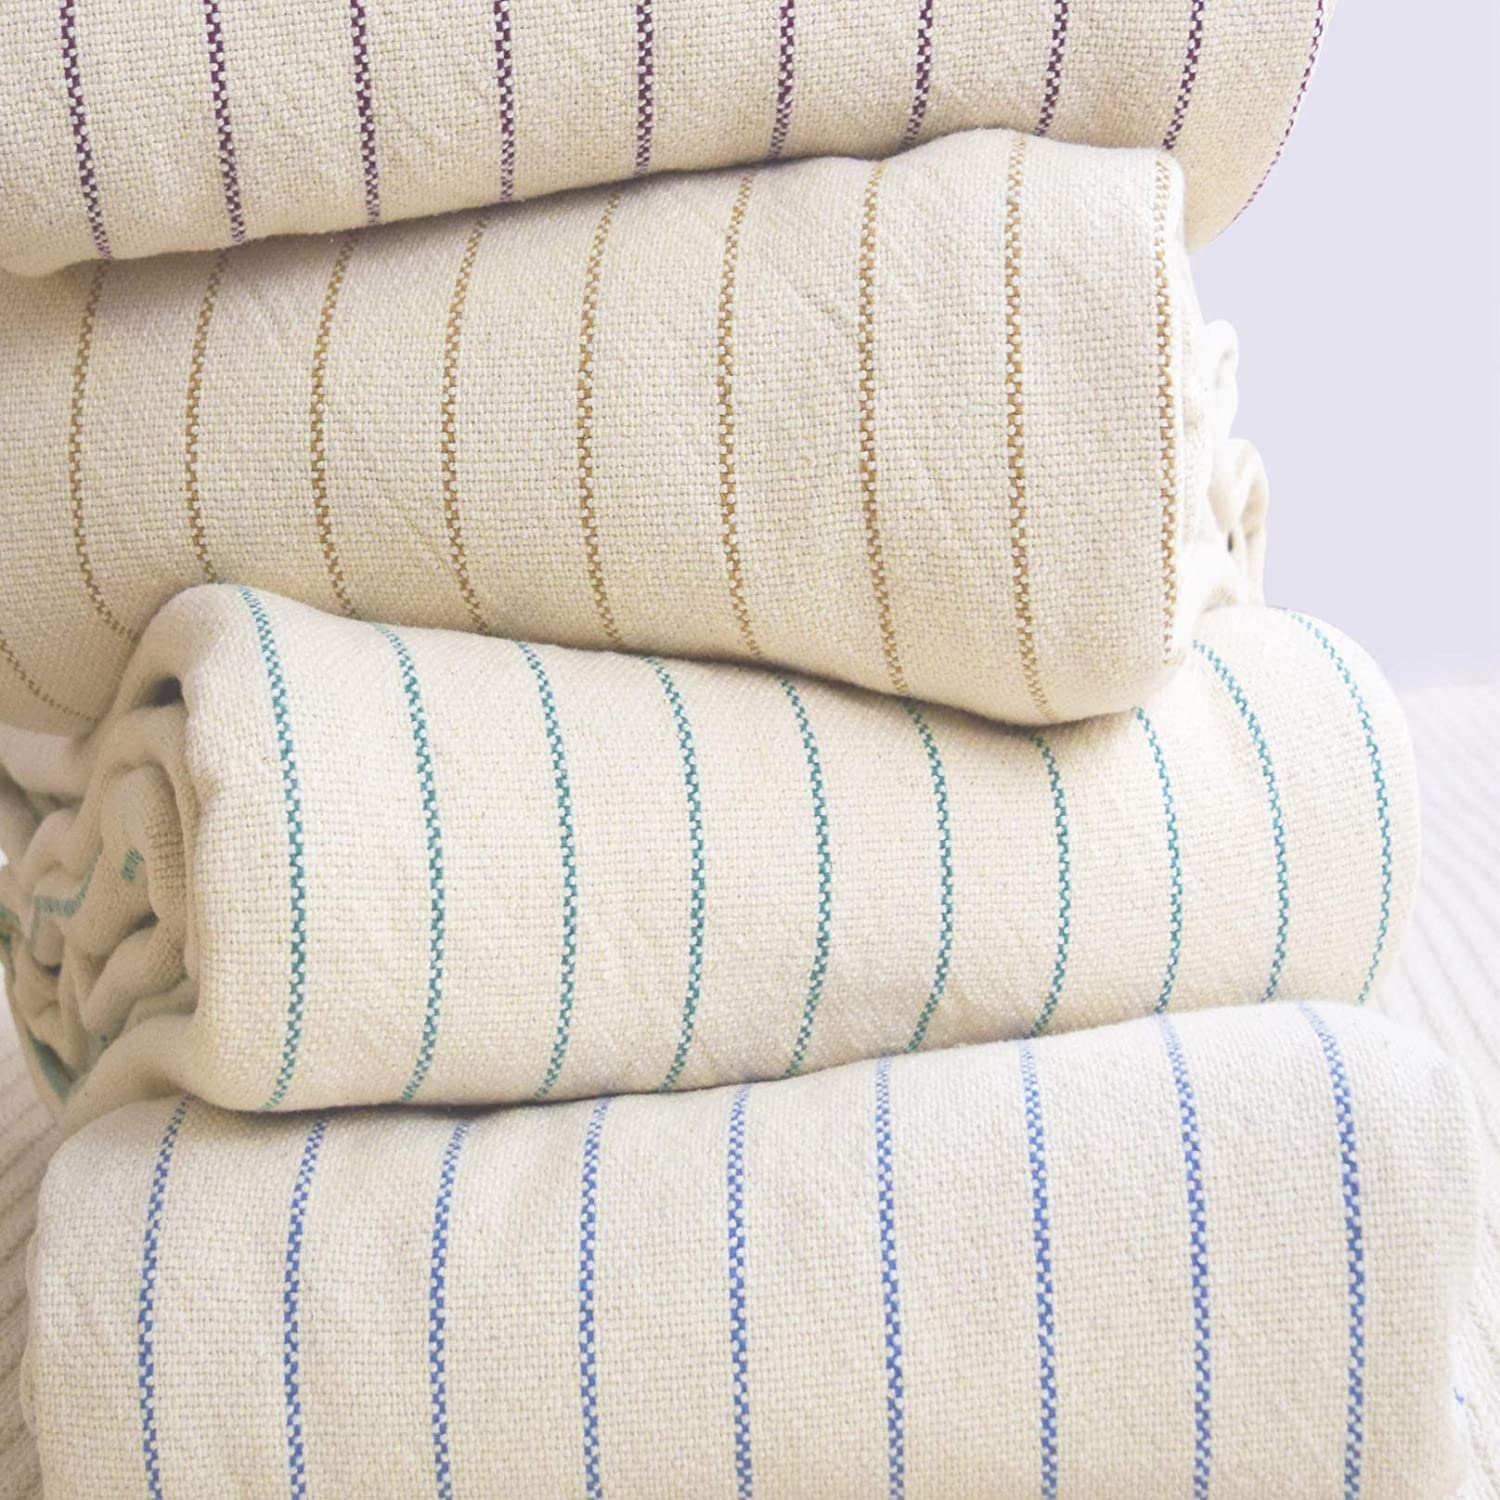 Maine Heritage Weavers Woven Cotton Stripes Size: Twin, Color: Natural//Navy Blanket 1005-T-NVY